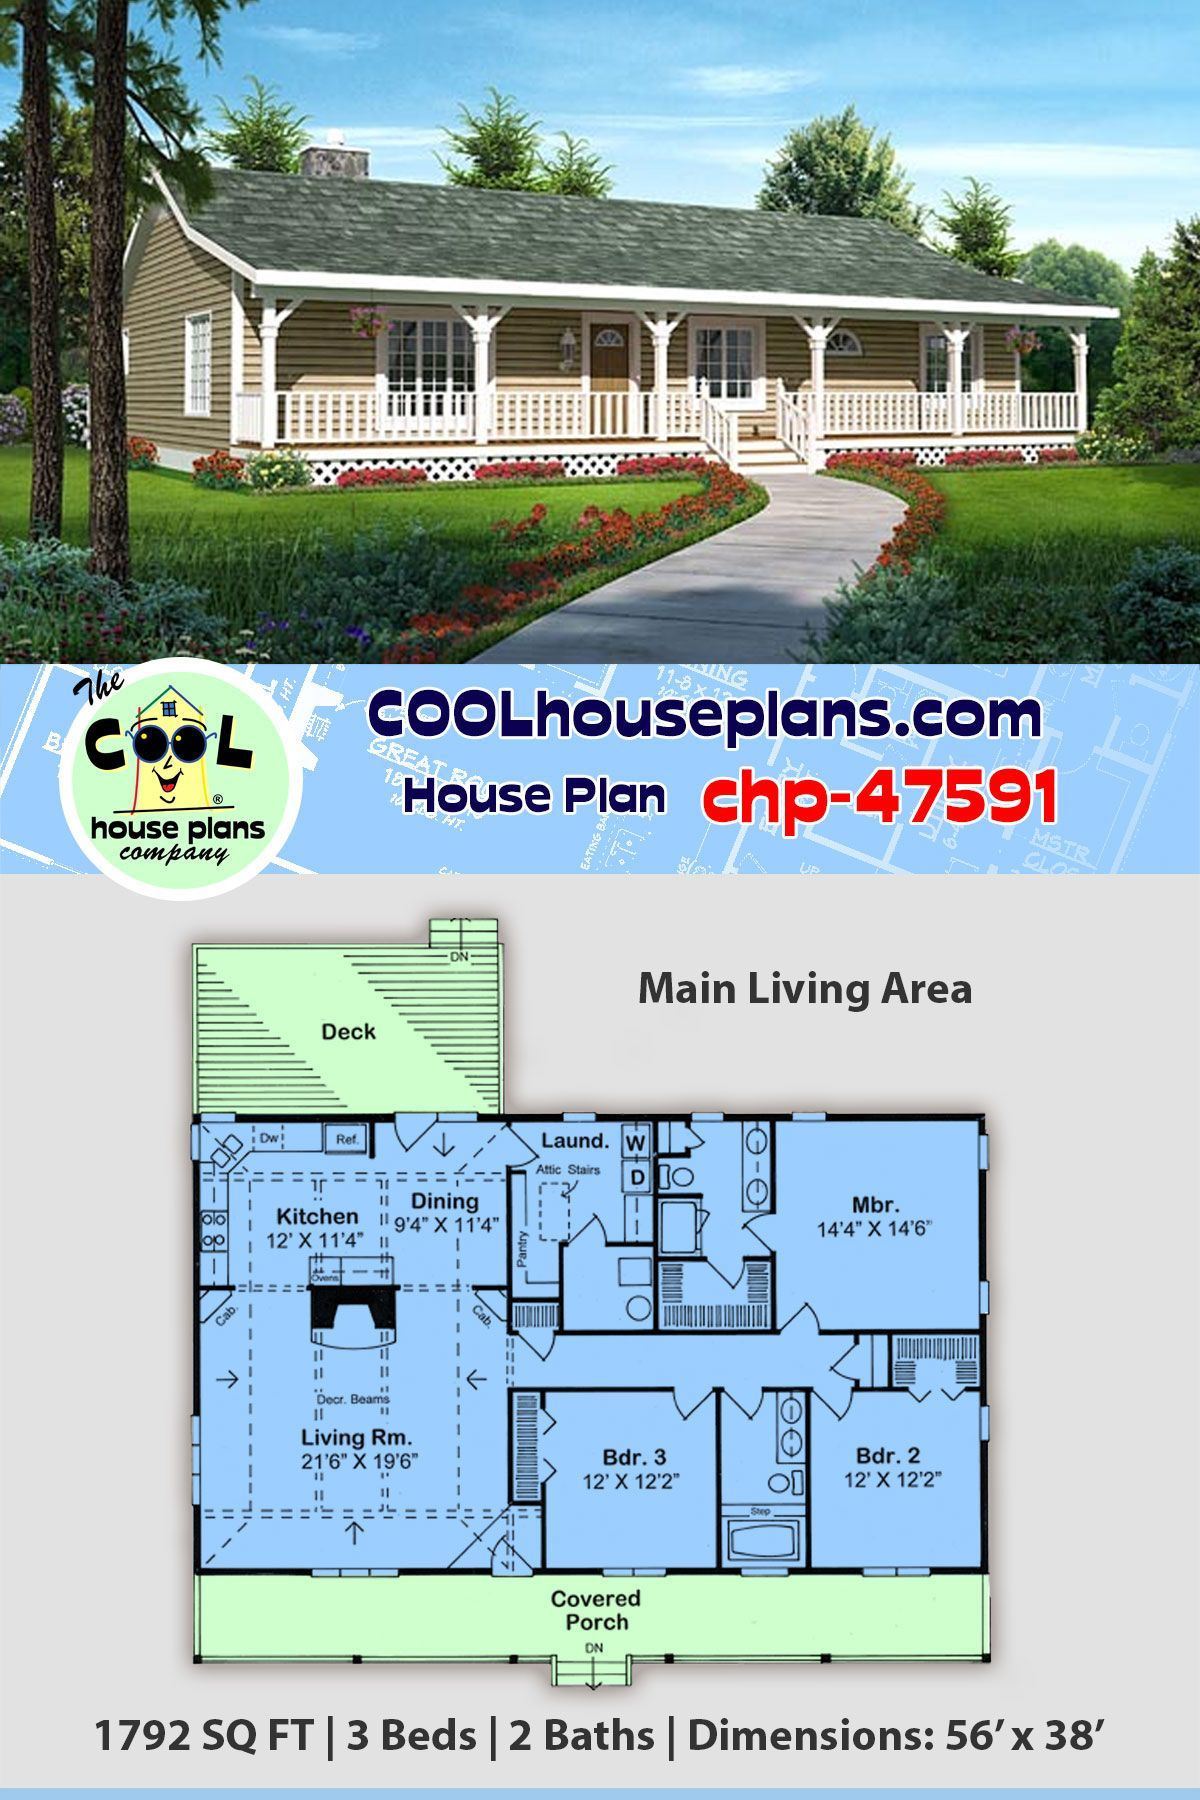 Affordable Home Plan Three Bedroom Ranch Design Chp 47591 At Cool House Plans Affordable House Plans House Plans Ranch House Plans